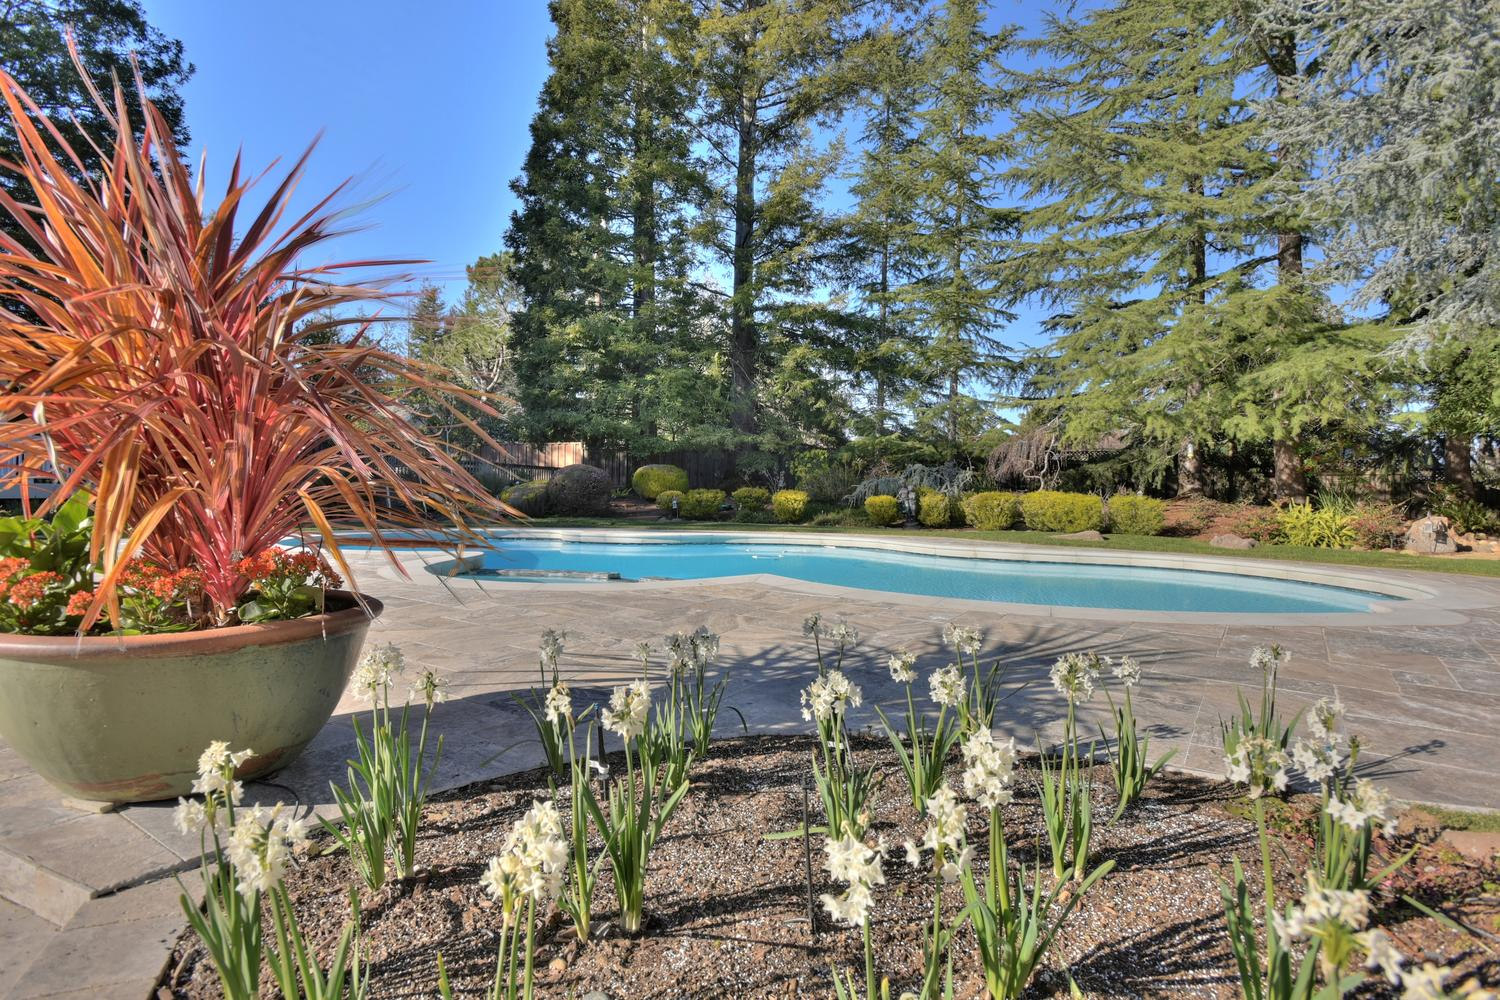 15977 Grandview Dr Monte-large-053-53-Pool and Flowers-1500x1000-72dpi.jpg